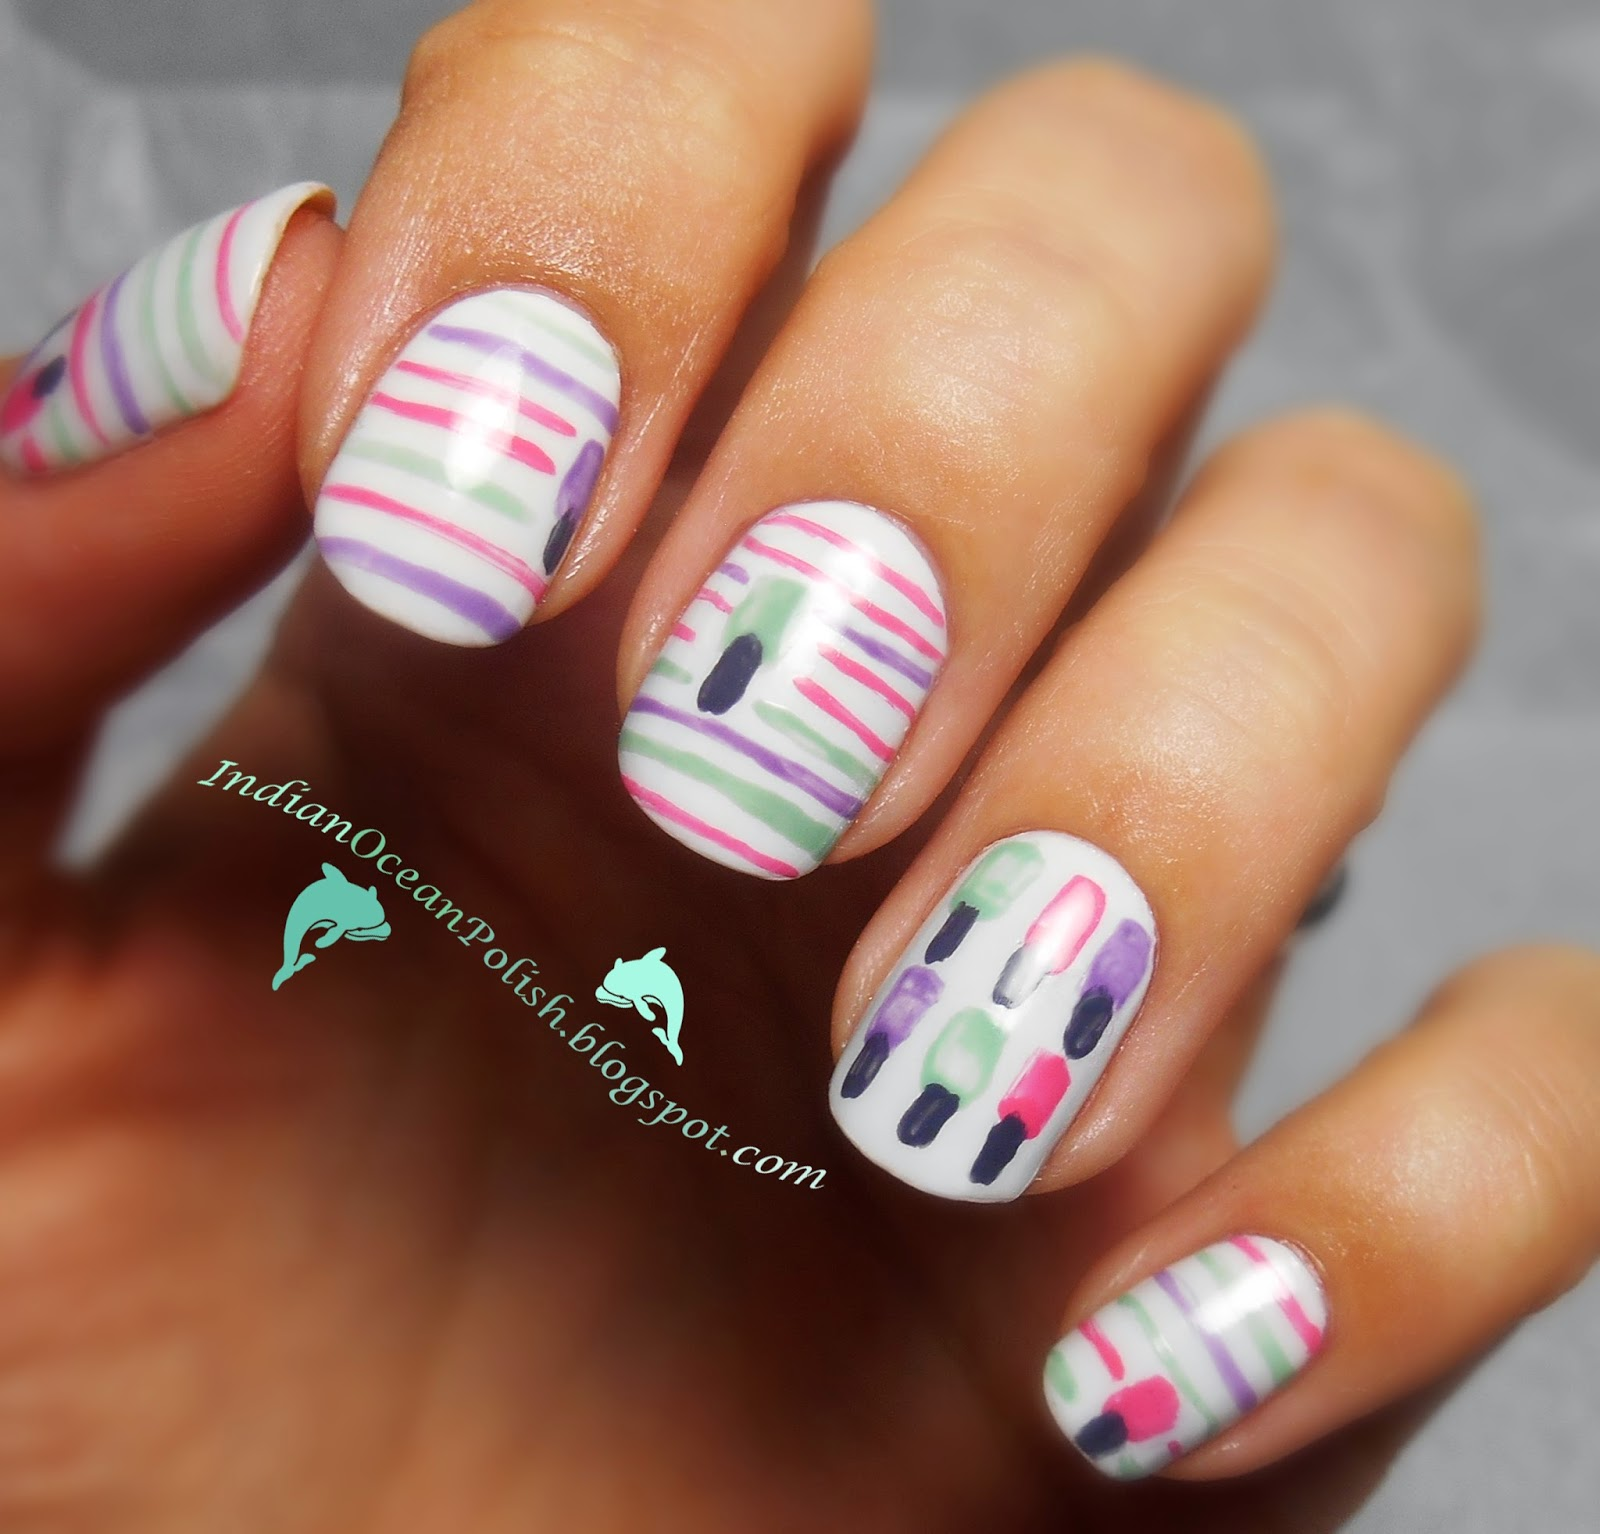 Concrete And Nail Polish Striped Nail Art: Indian Ocean Polish: Nail Polish Bottle Nail Art- Say It 3